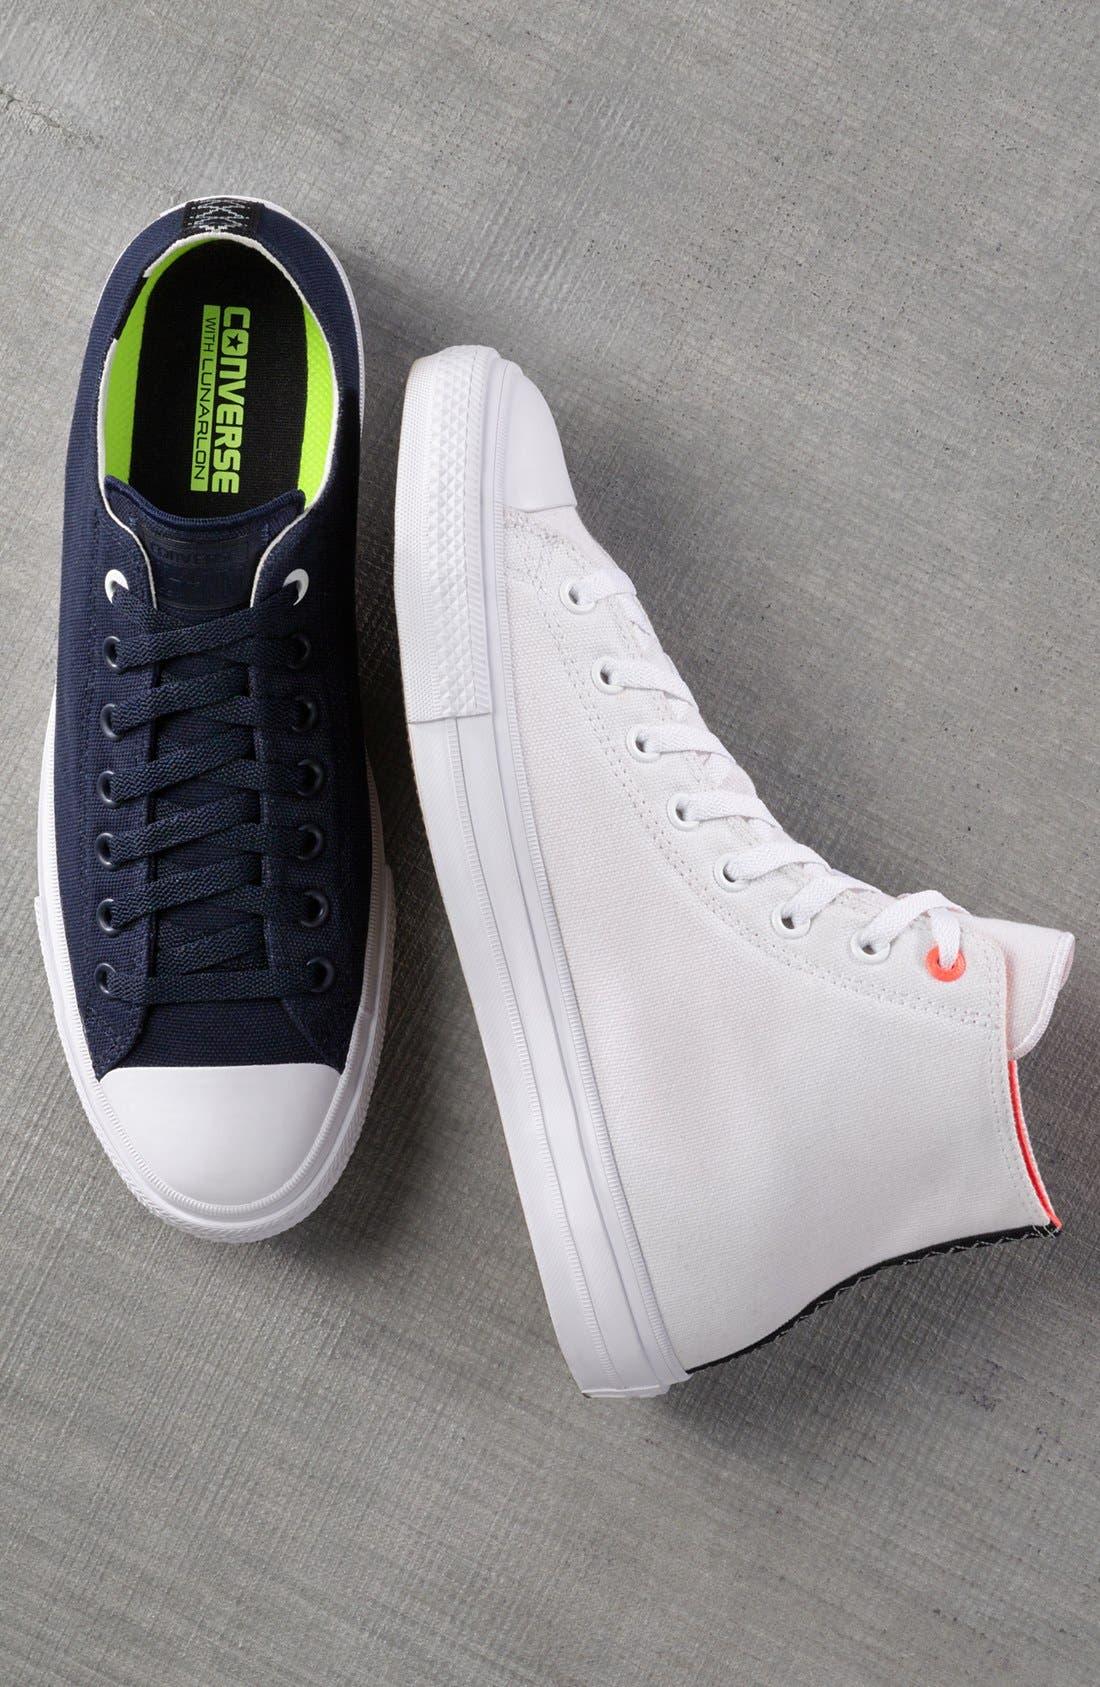 Chuck Taylor<sup>®</sup> All Star<sup>®</sup> II 'Shield' Water Repellent High Top Sneaker,                             Main thumbnail 1, color,                             003